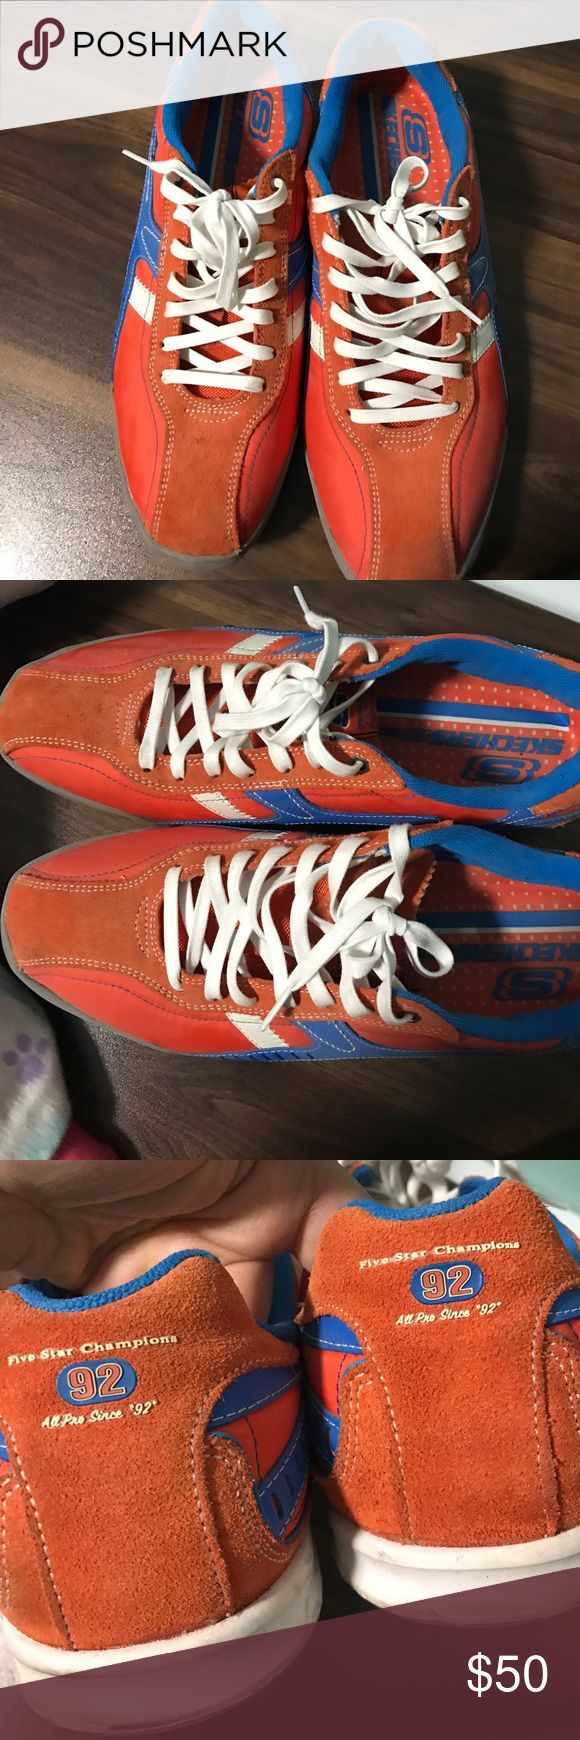 🎈🎈🎈😍SALE SALE SKECHERS men shoes 🎈🎈🎈🎈🎈 for 1 hours Skechers men sneakers perfect conditions like New size 11 Skechers Shoes Sneakers